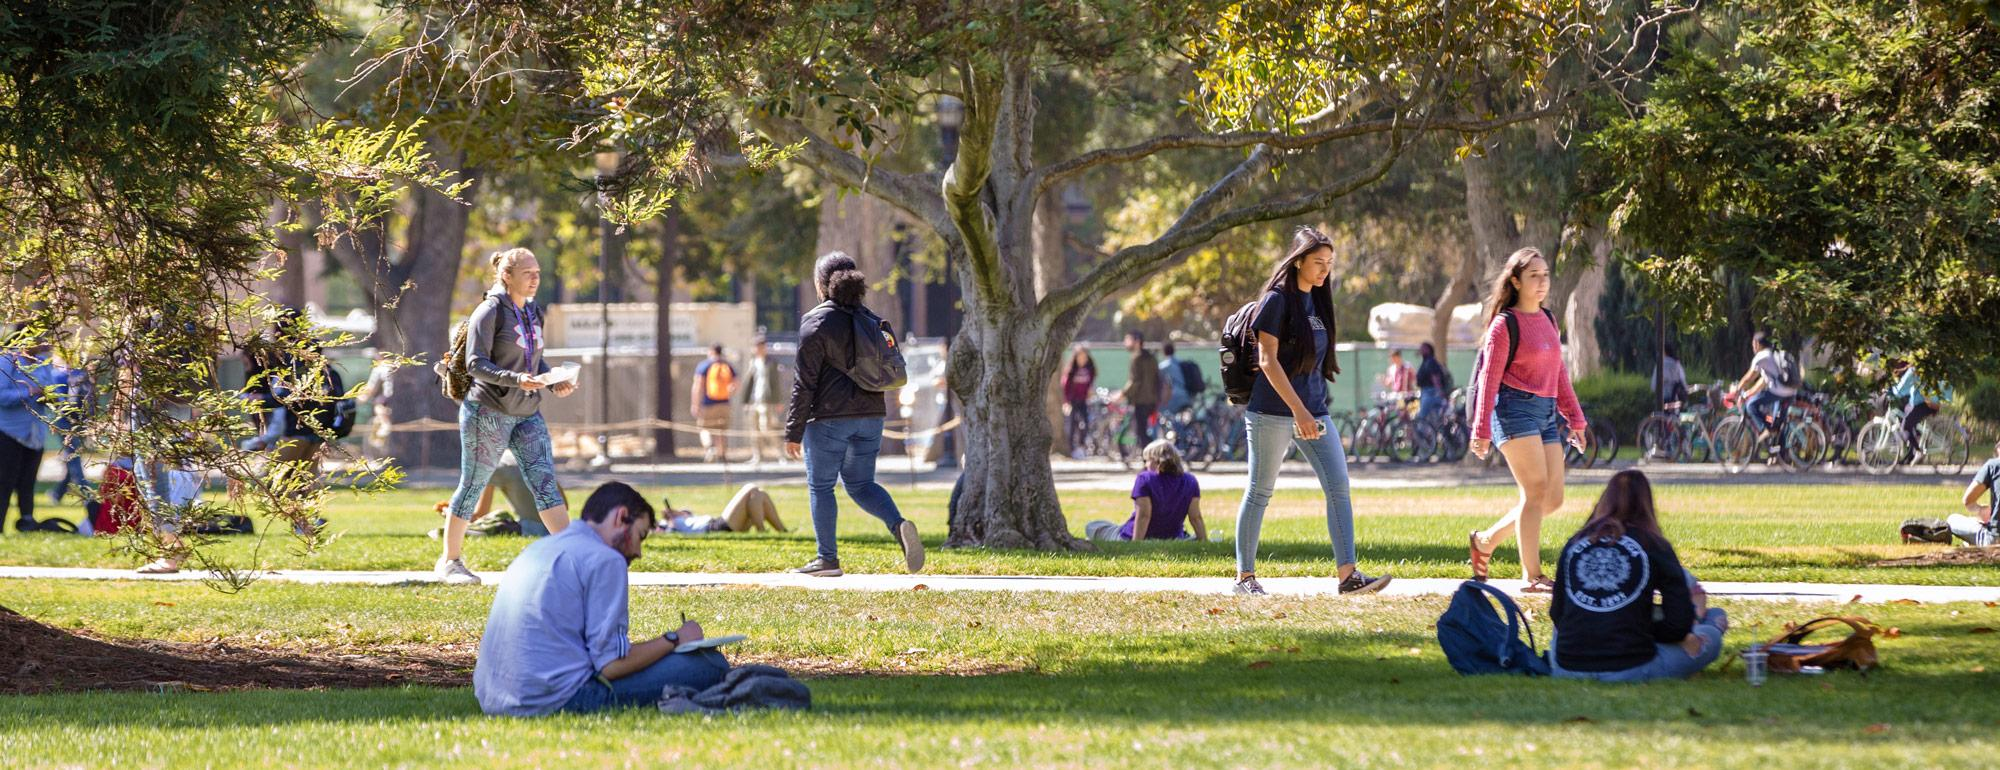 students sitting and walking, enjoying the quad on a sunny day